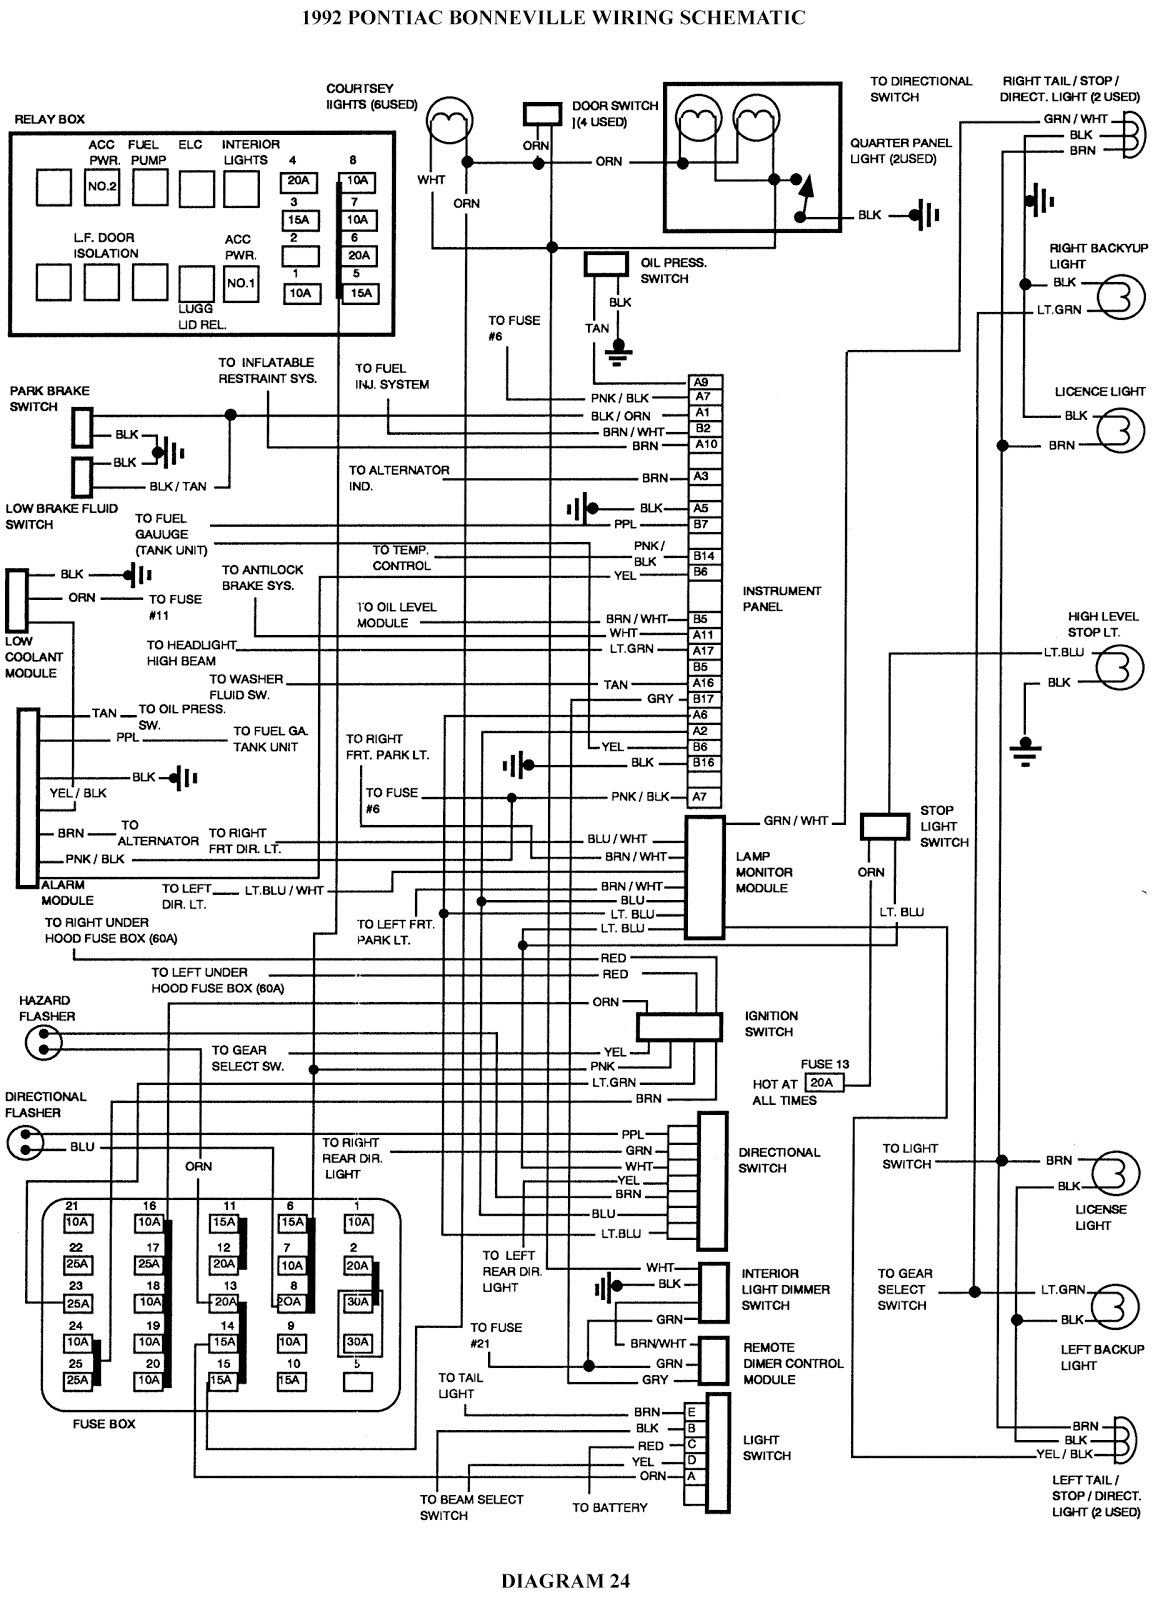 1969 pontiac firebird wiring diagram colored